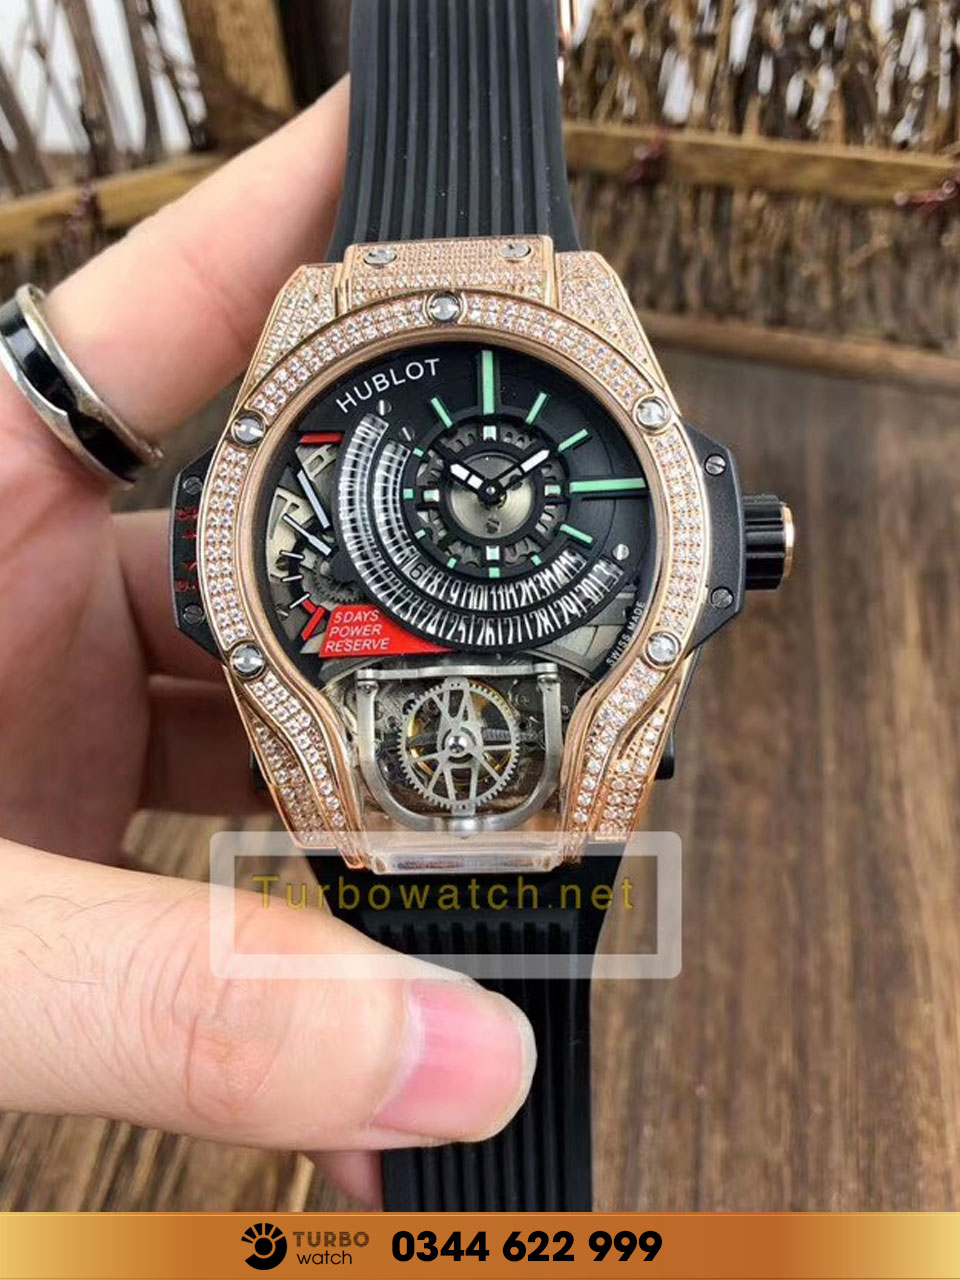 Hublot MP-09 Tourbillon Bi-Axis gold diamond  fake 1-1 siêu cấp